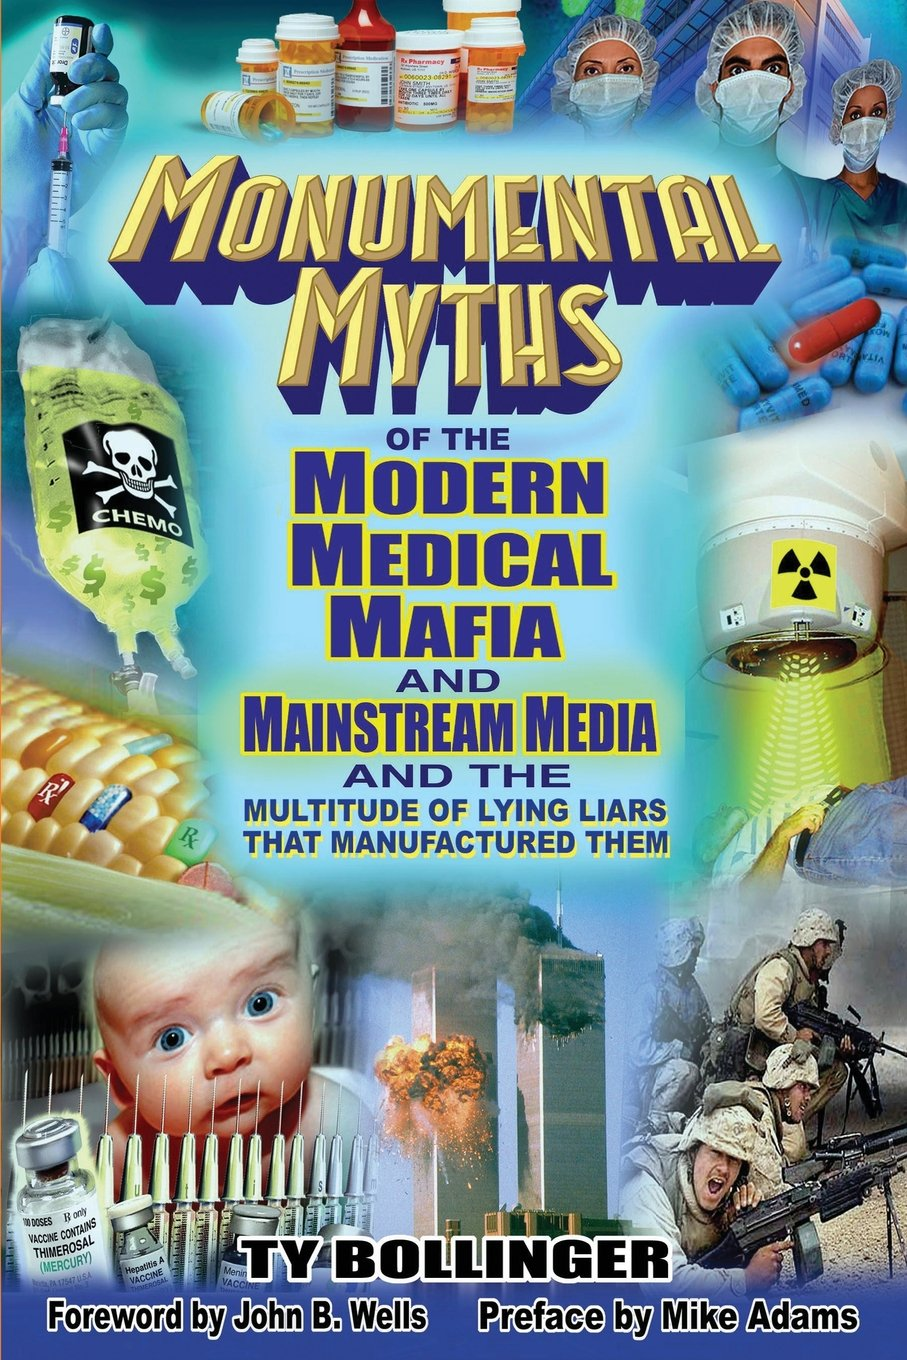 Monumental Medical Mainstream Multitude Manufactured